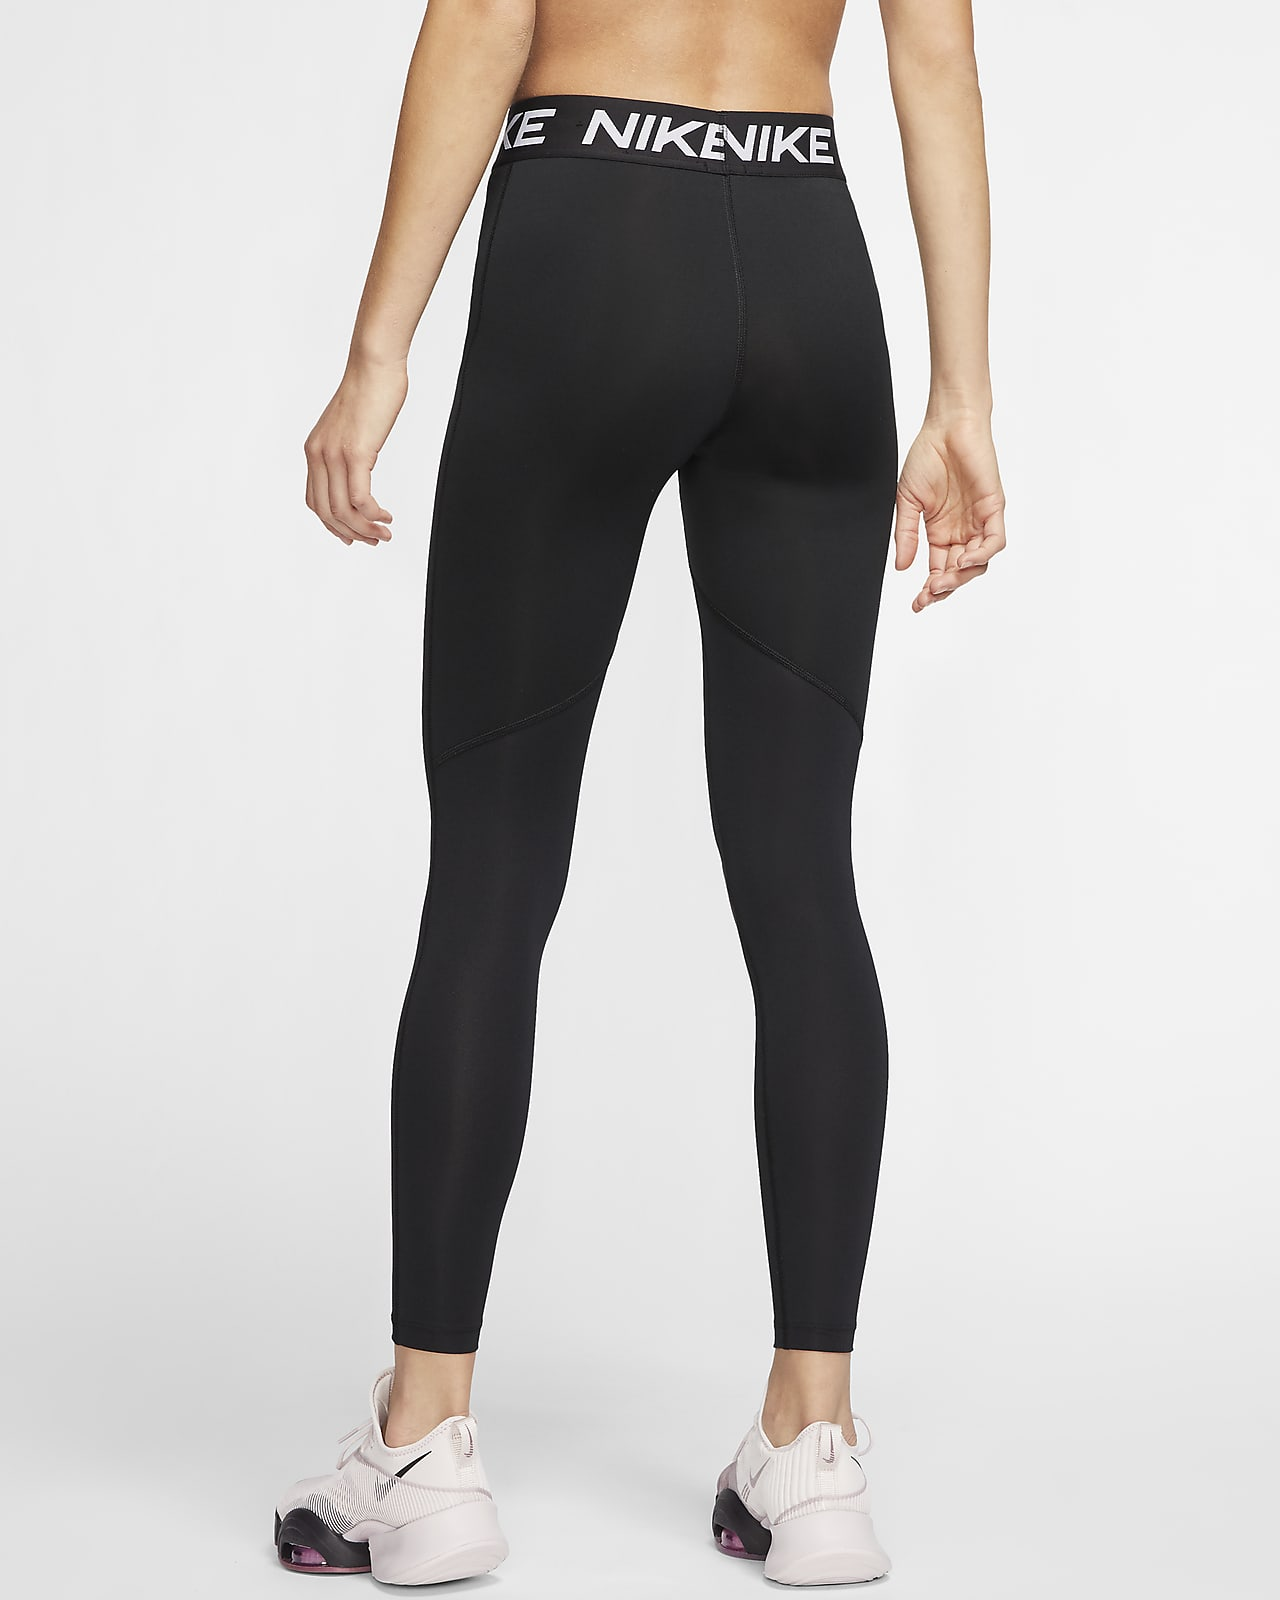 Nike Girls Victory Tights